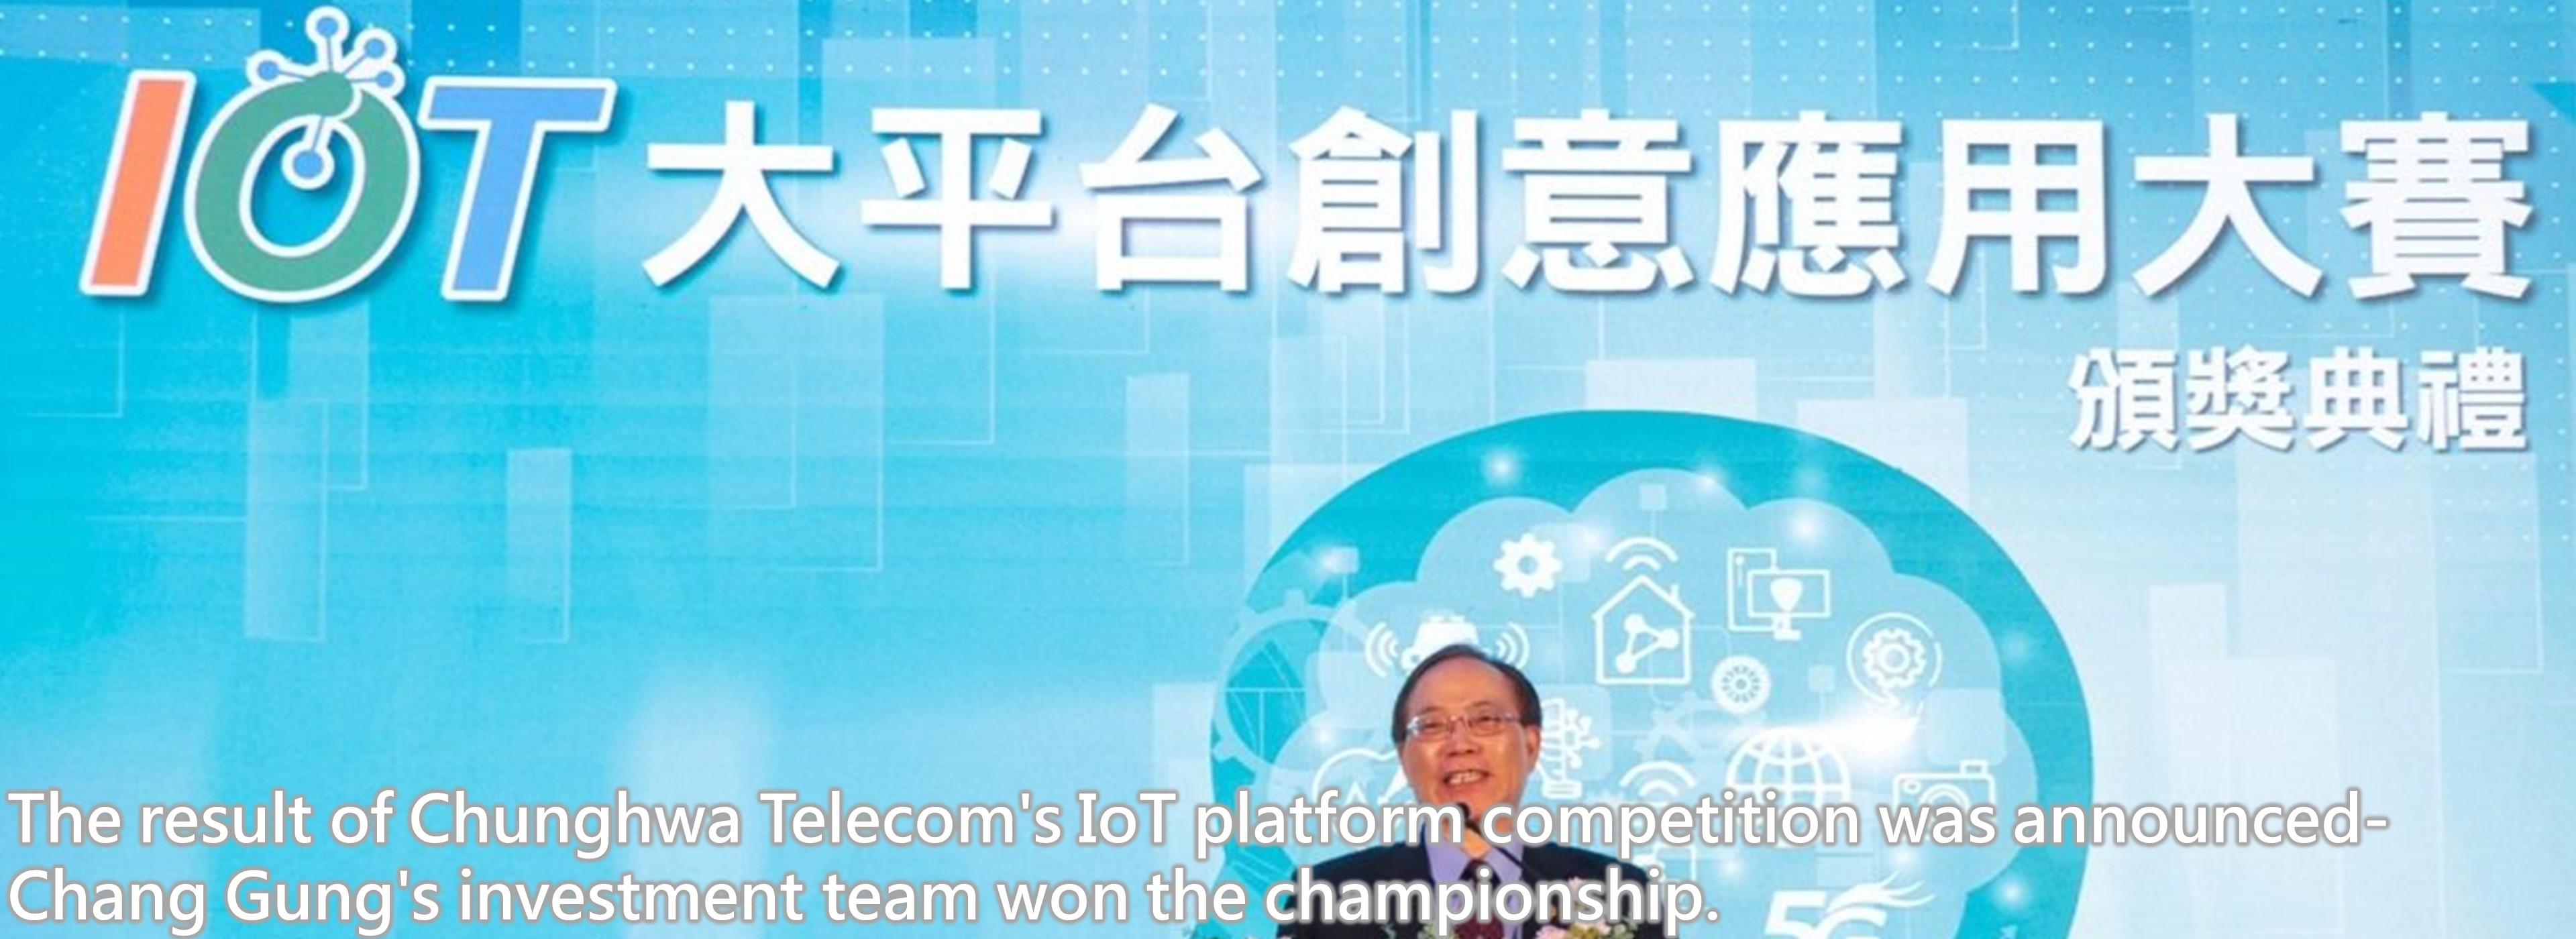 The result of Chunghwa Telecom's IoT platform competition was announced-Chang Gung's investment team won the championship.